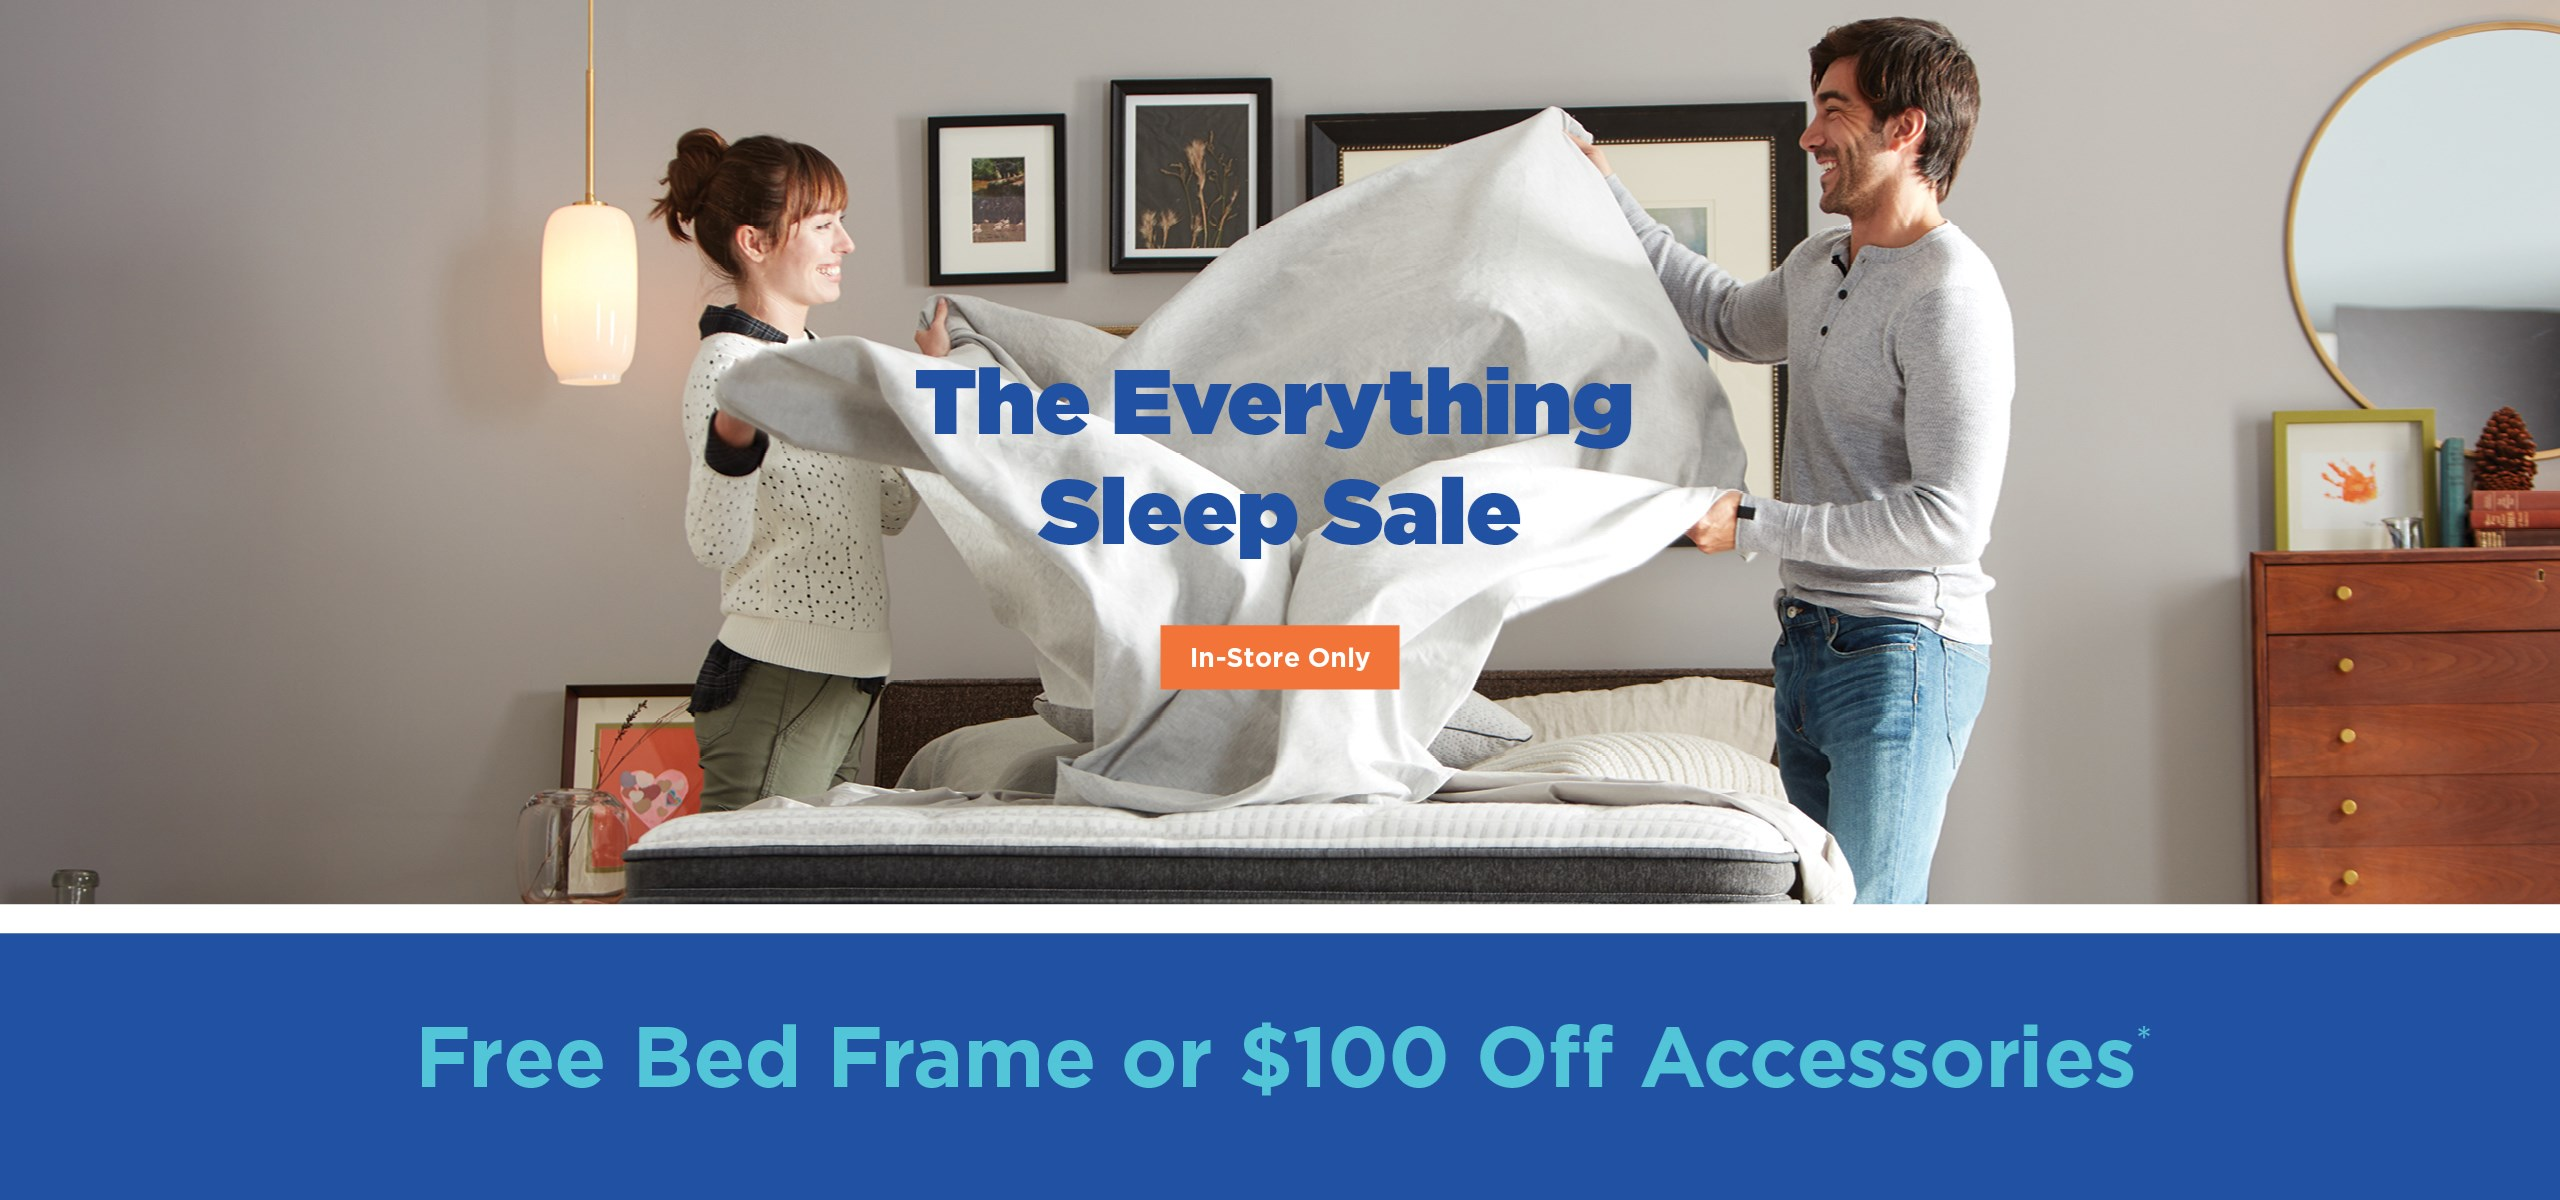 Free bed frame or $100 off accessories with purchase of $899 mattress or set. See store for details.